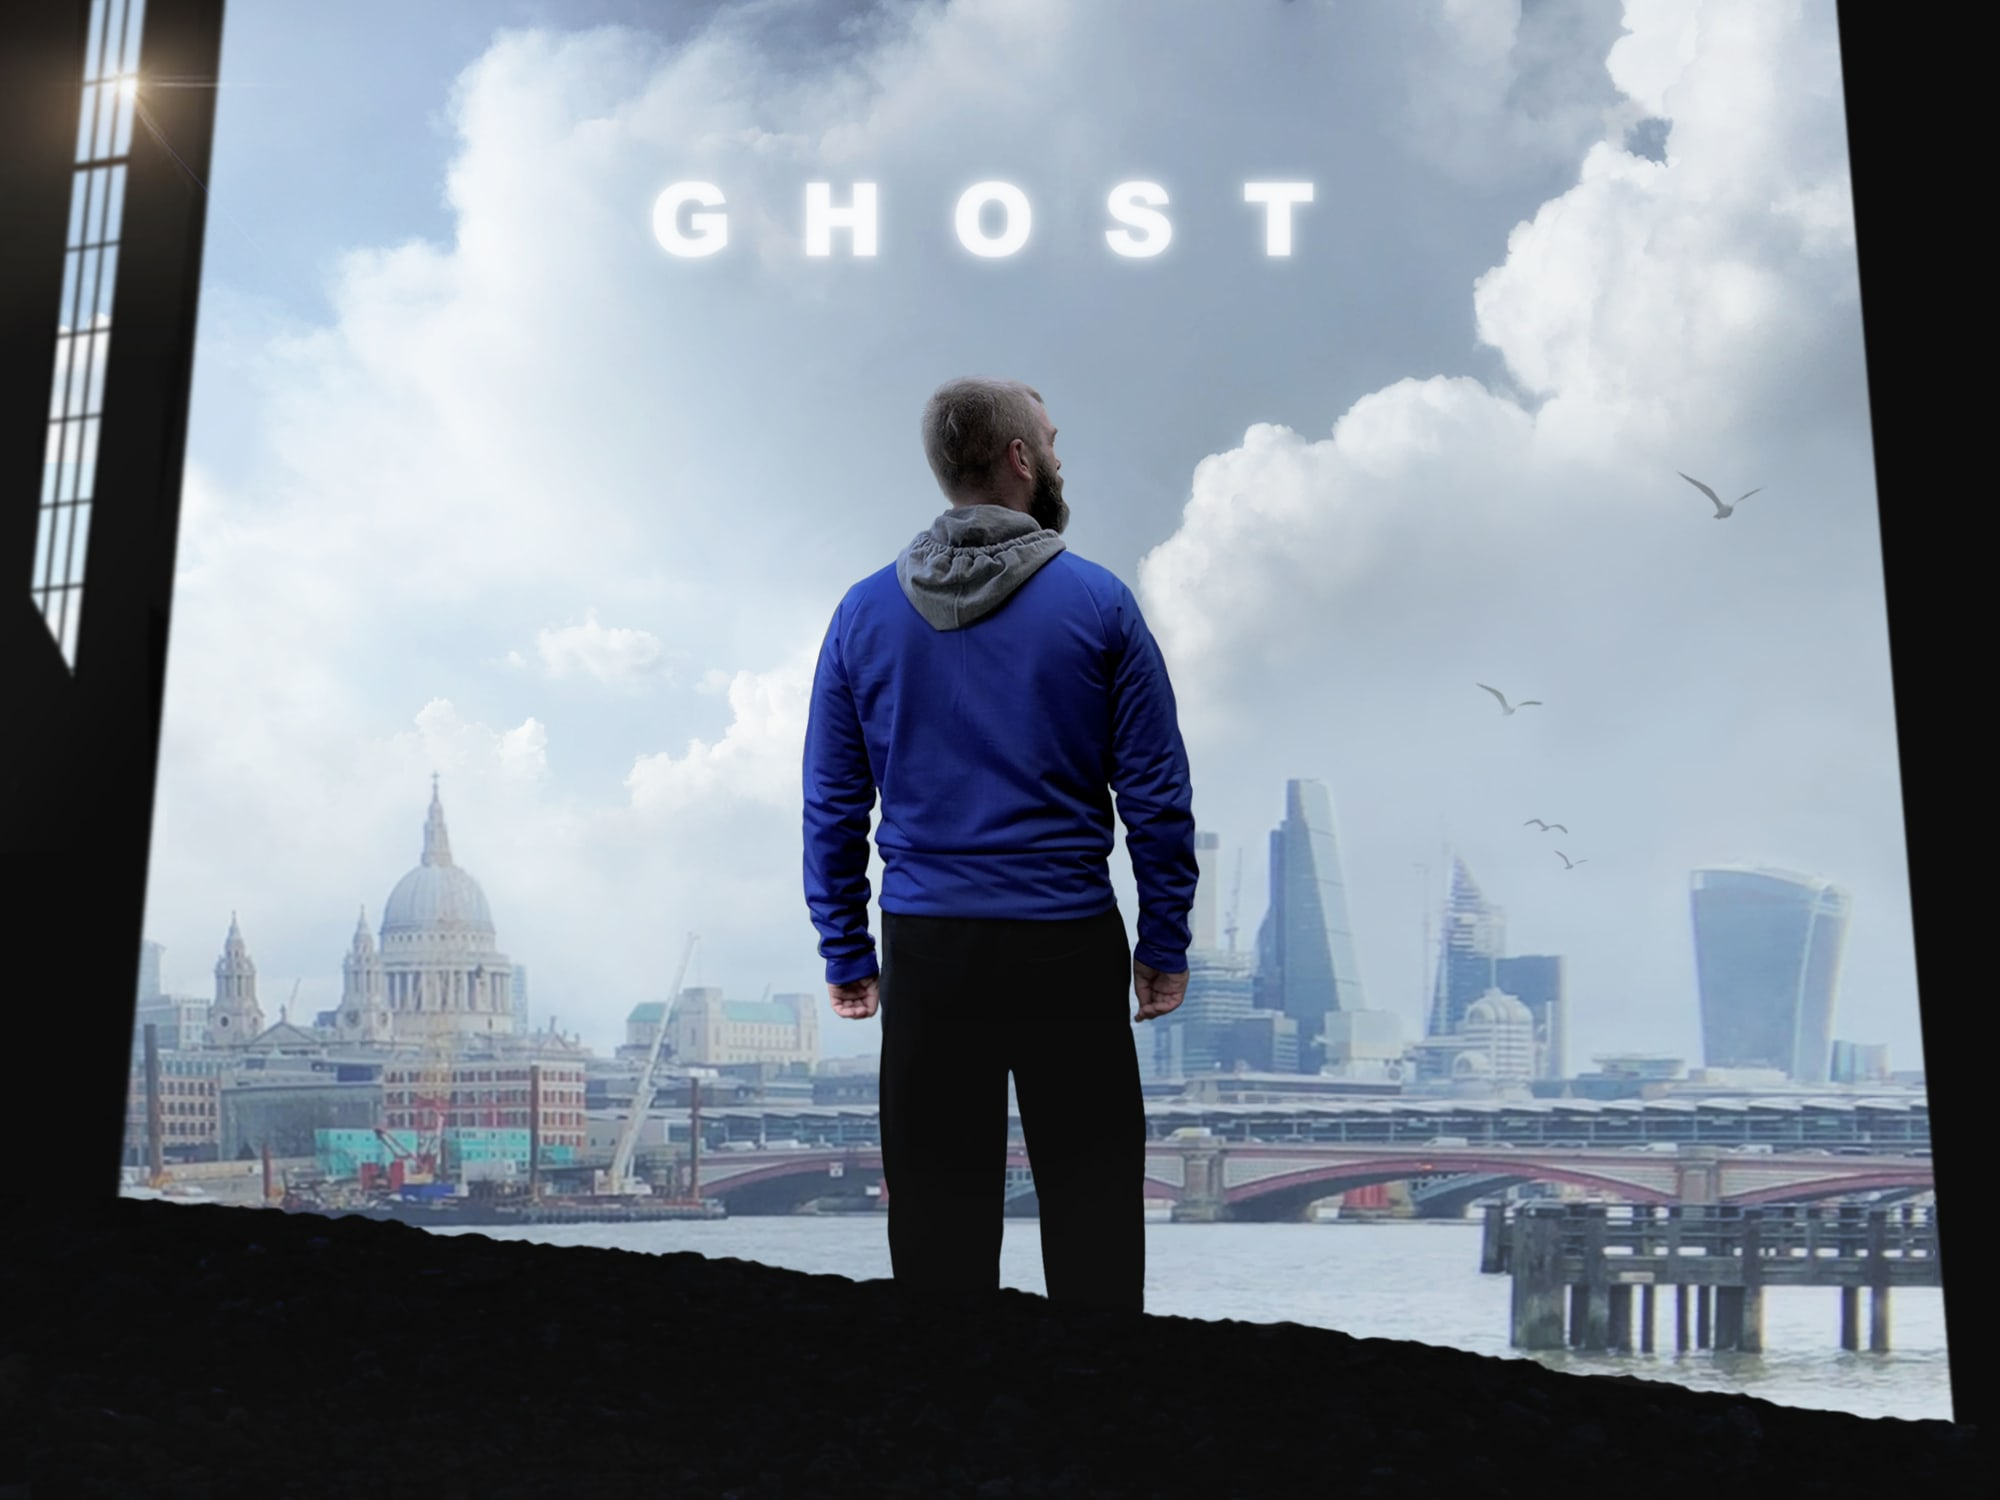 Ghost has some of the best camerawork of any movie shot on an iPhone